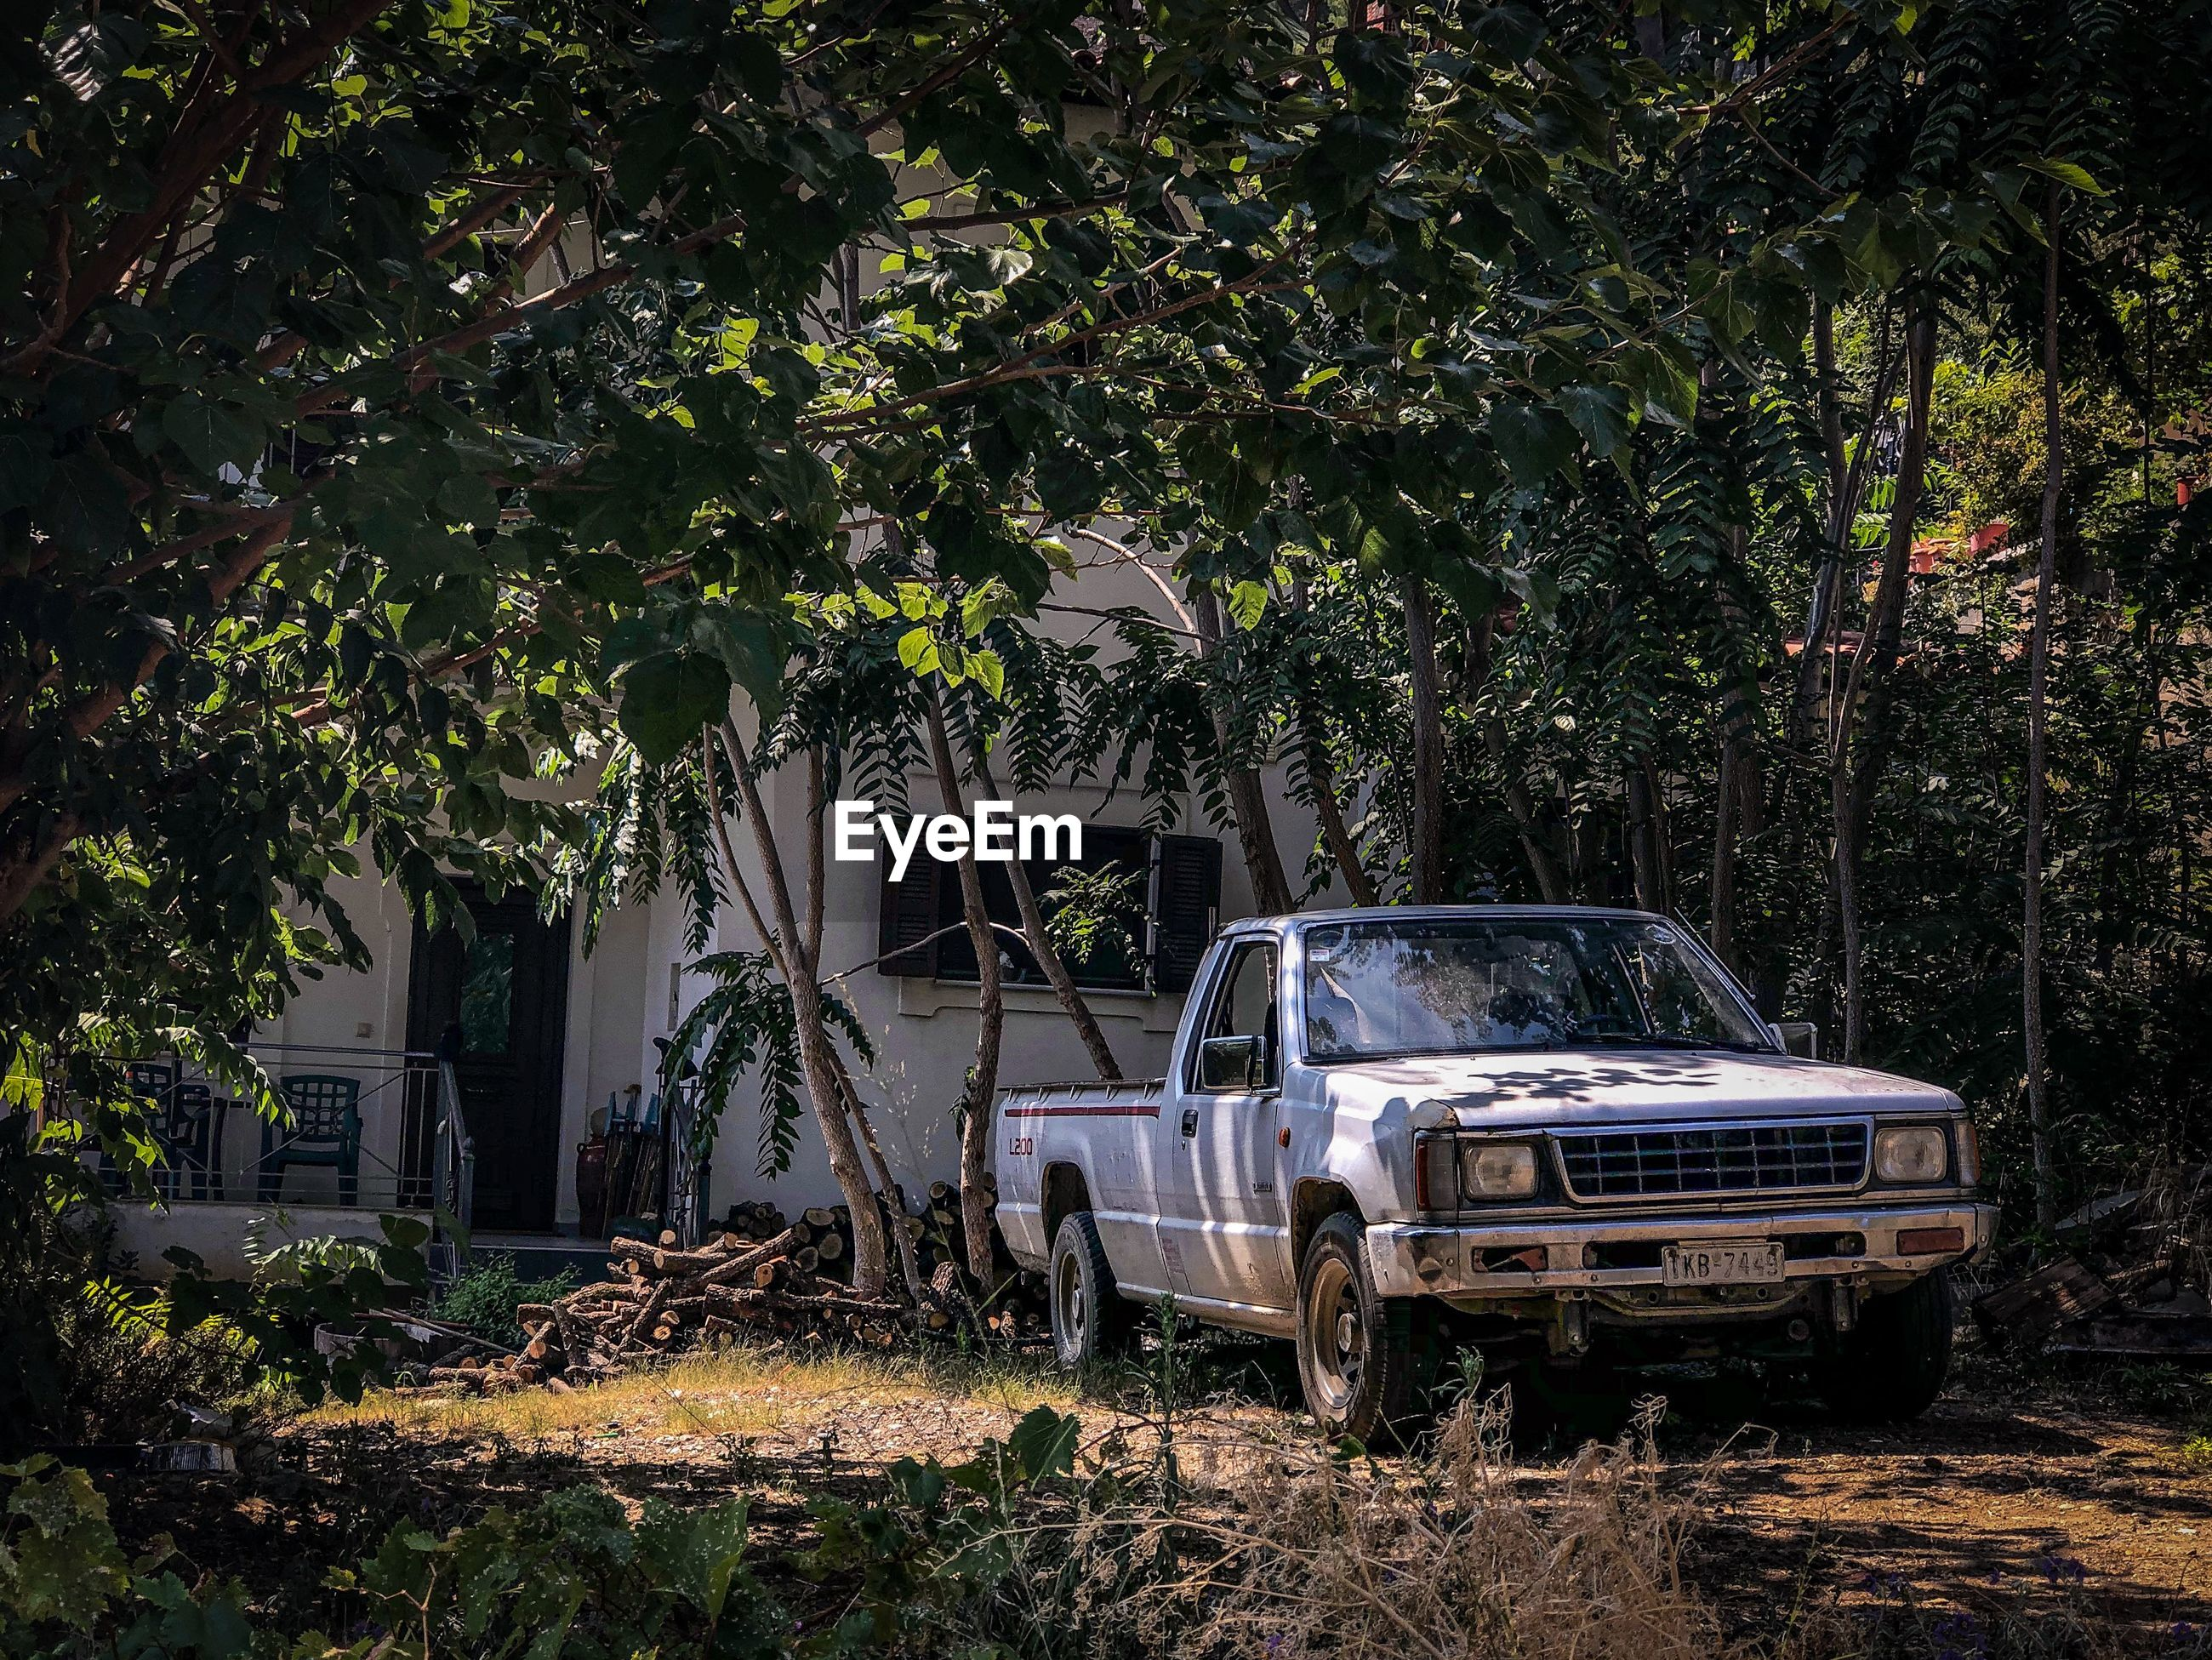 ABANDONED CAR IN YARD AGAINST TREES